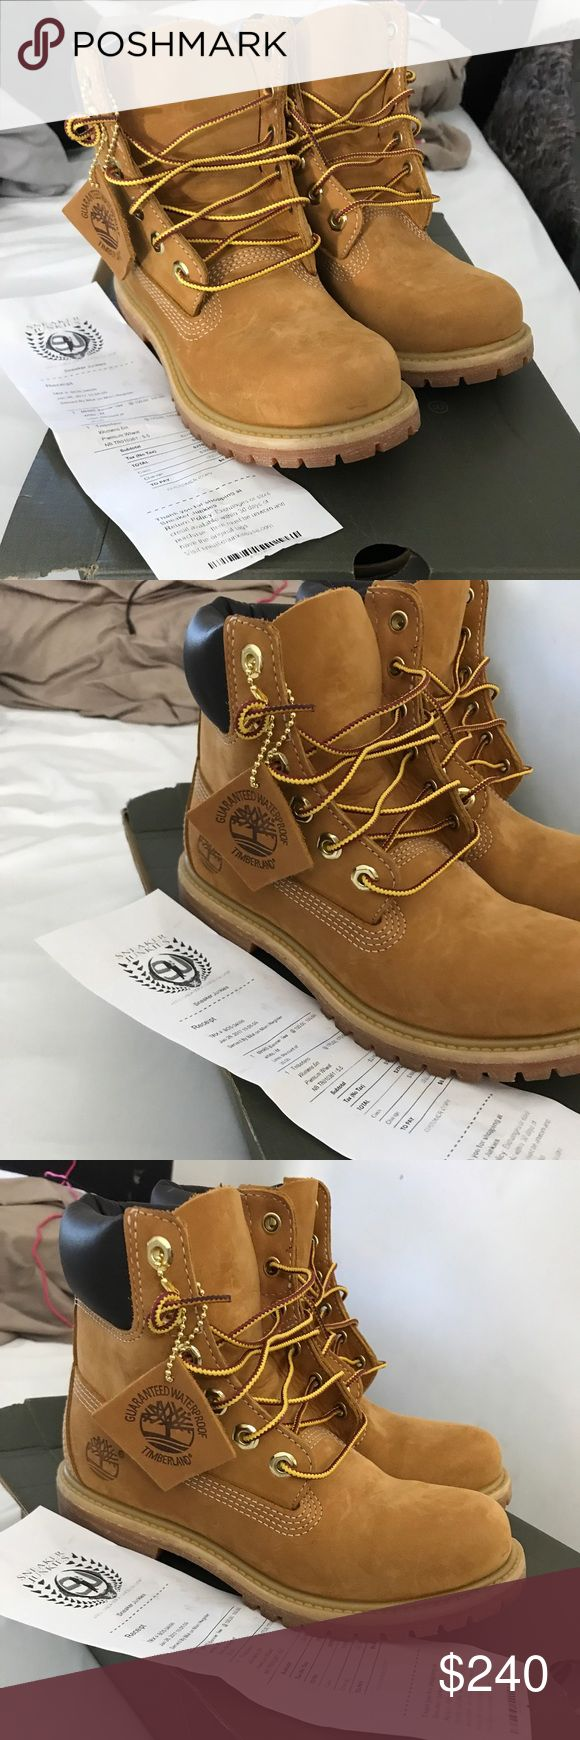 Timberland Brand new never worn size 5.5 timberland boots original. With receipt and box. Woman size not boys Timberland Shoes Winter & Rain Boots